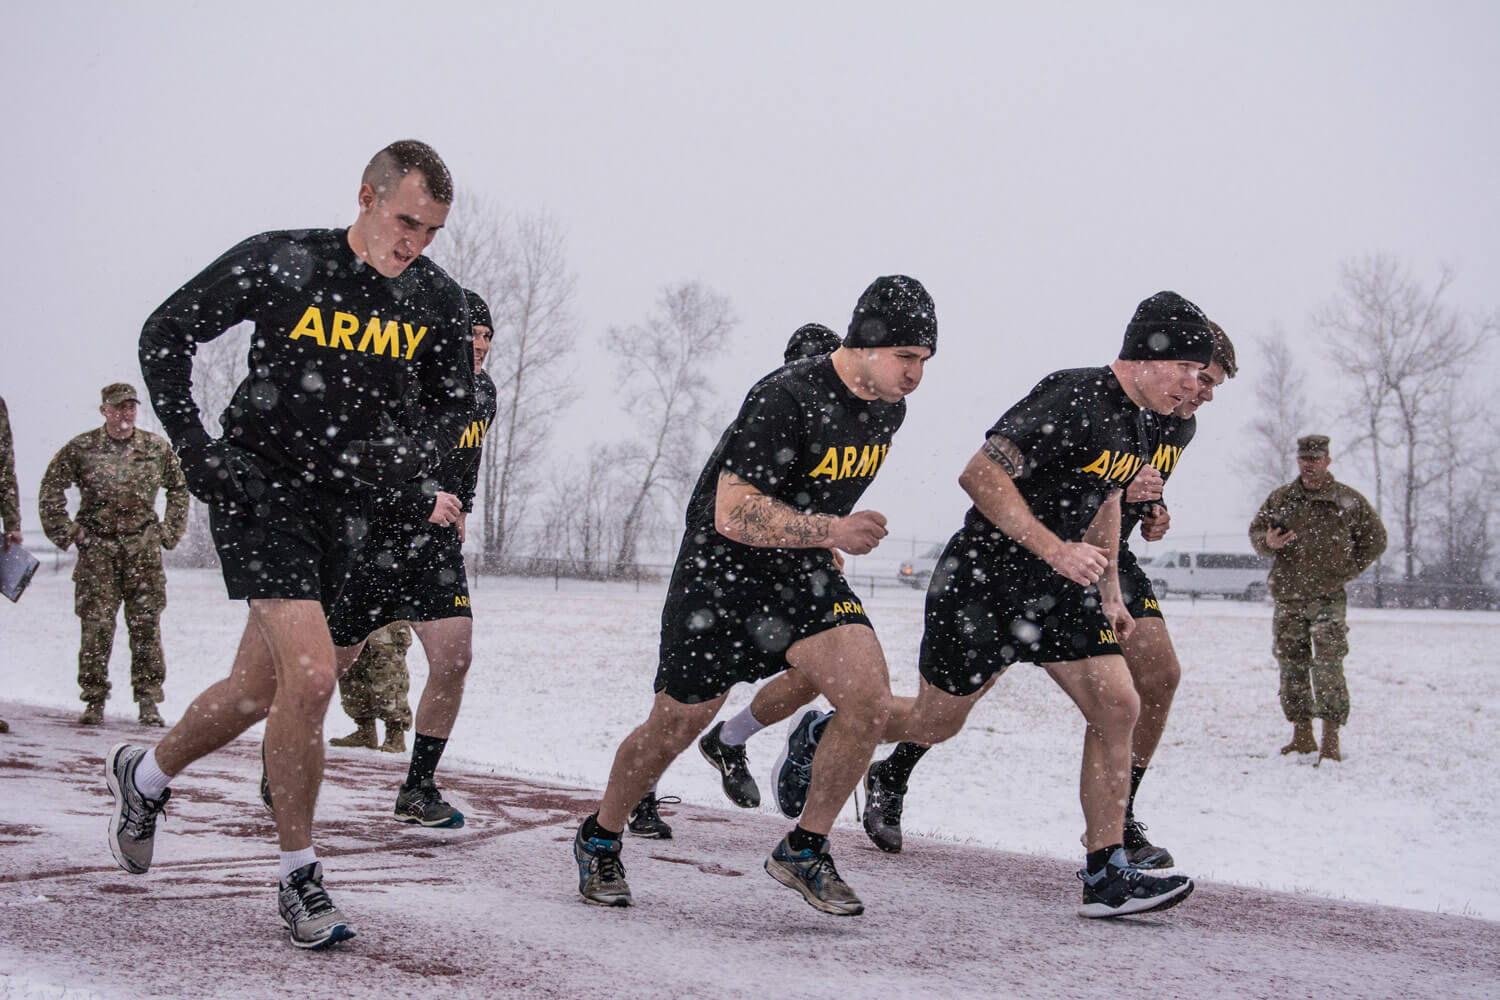 Soldiers from the Maine Army National Guard plow through the snow during the Army Physical Fitness Test at the Armed Forces Reserve Center track in Bangor, April 6, 2018. These Soldiers are competing in the State level of the Best Warrior Competition. Competitors are handpicked as the best representatives the State has to offer from over 2000 members of the Maine Army National Guard. Maine Army National Guard photo by SPC Jarod Dye